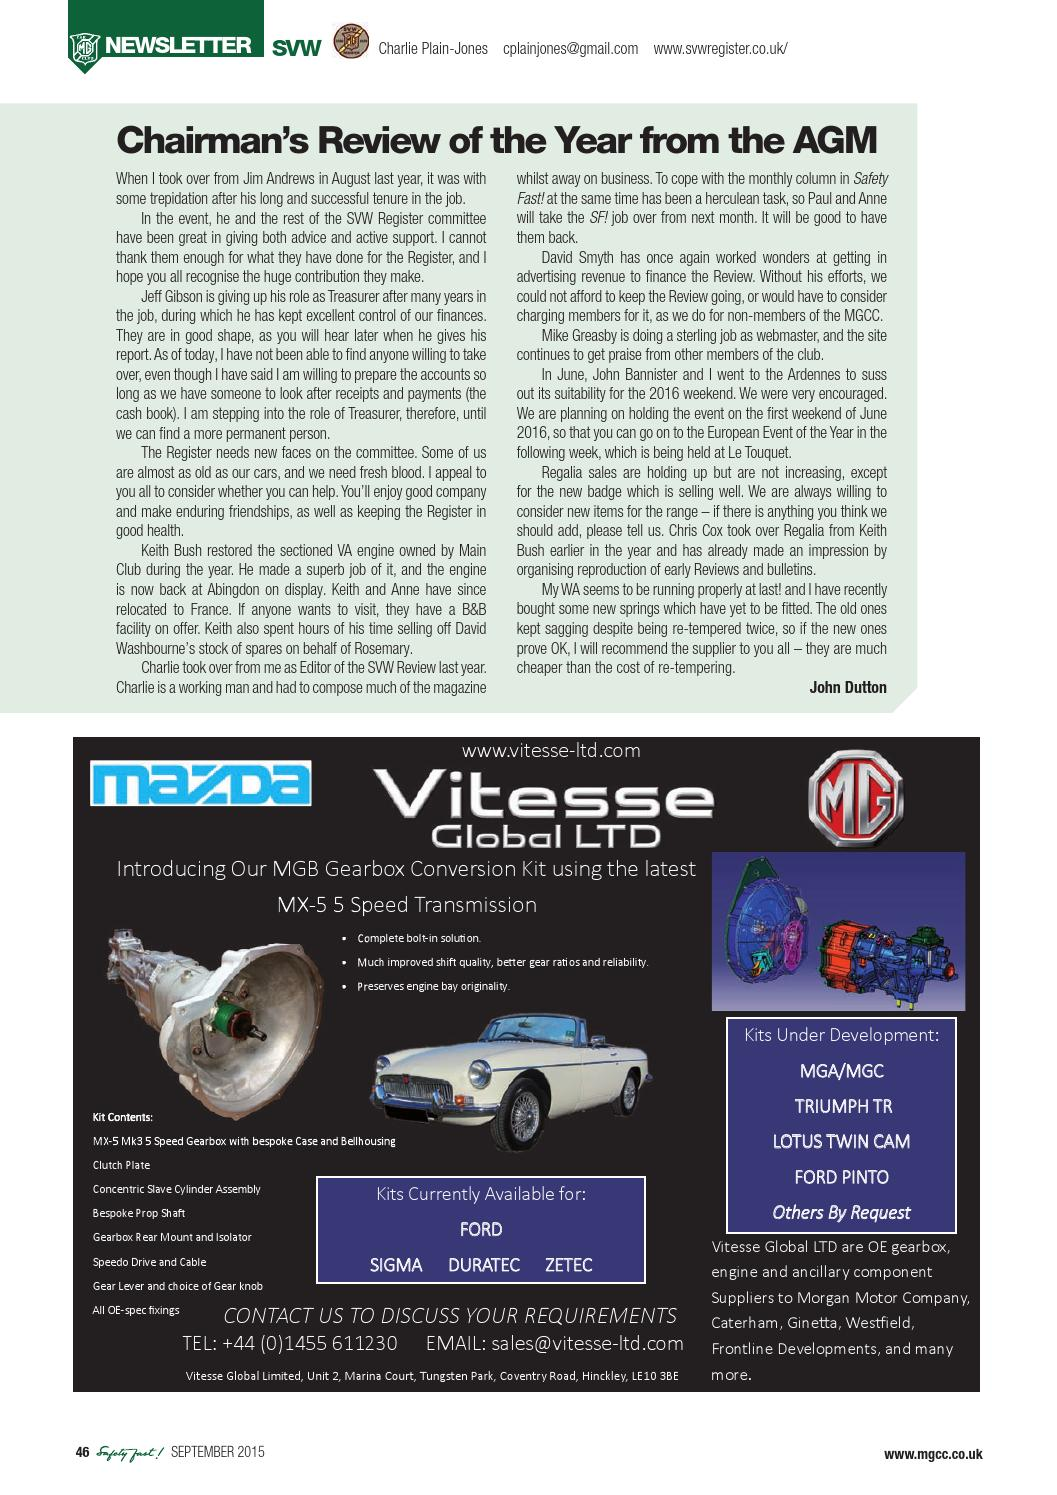 Safety Fast! September 2015 by MG Car Club - issuu